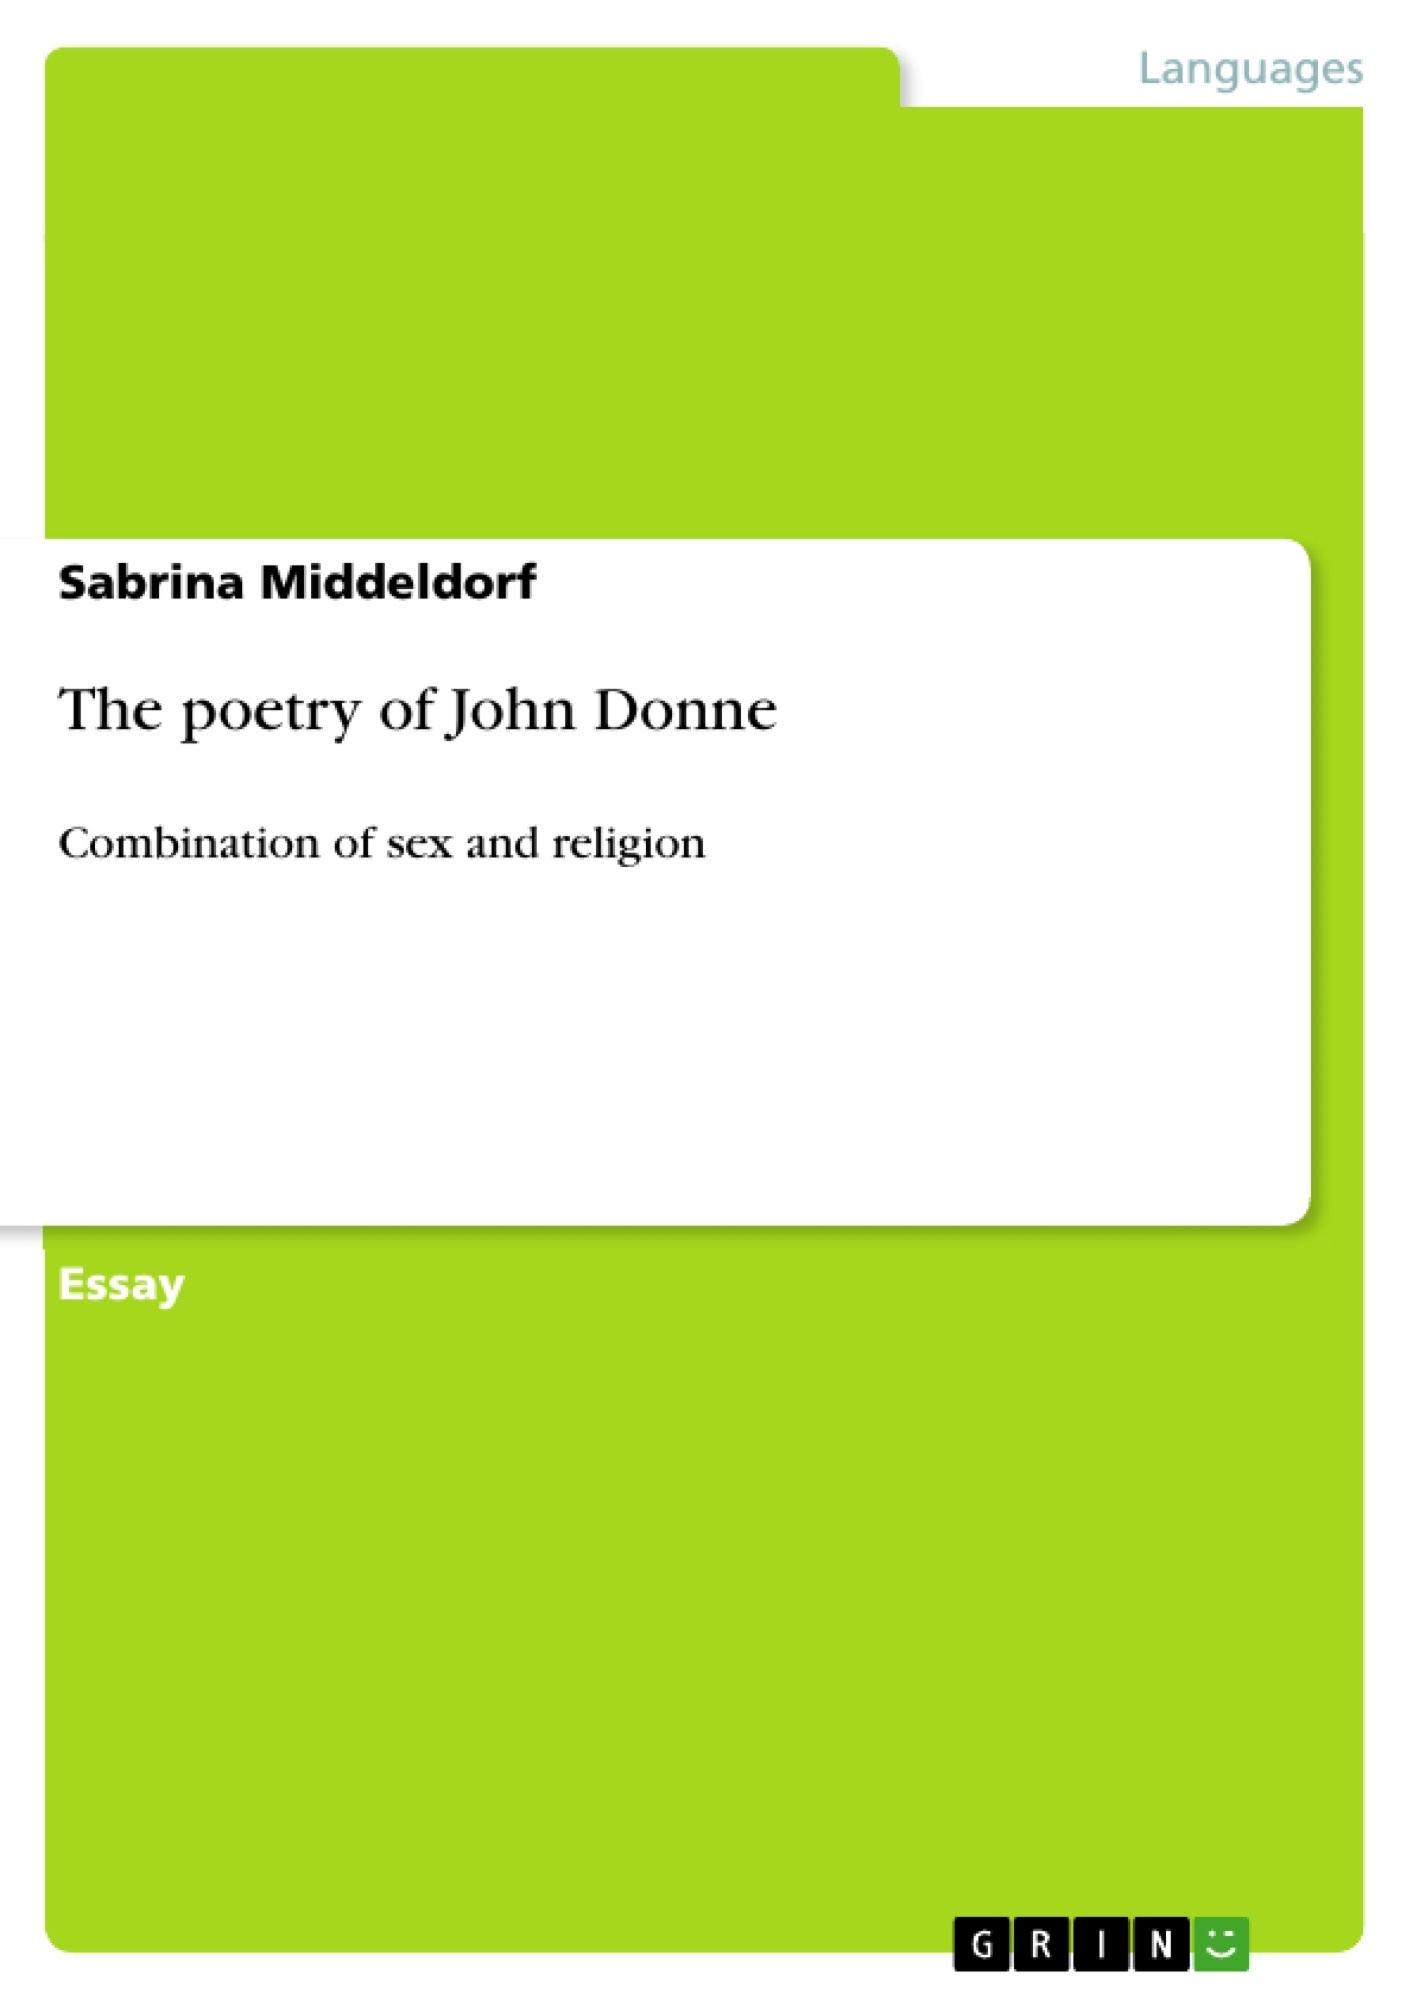 Title: The poetry of John Donne